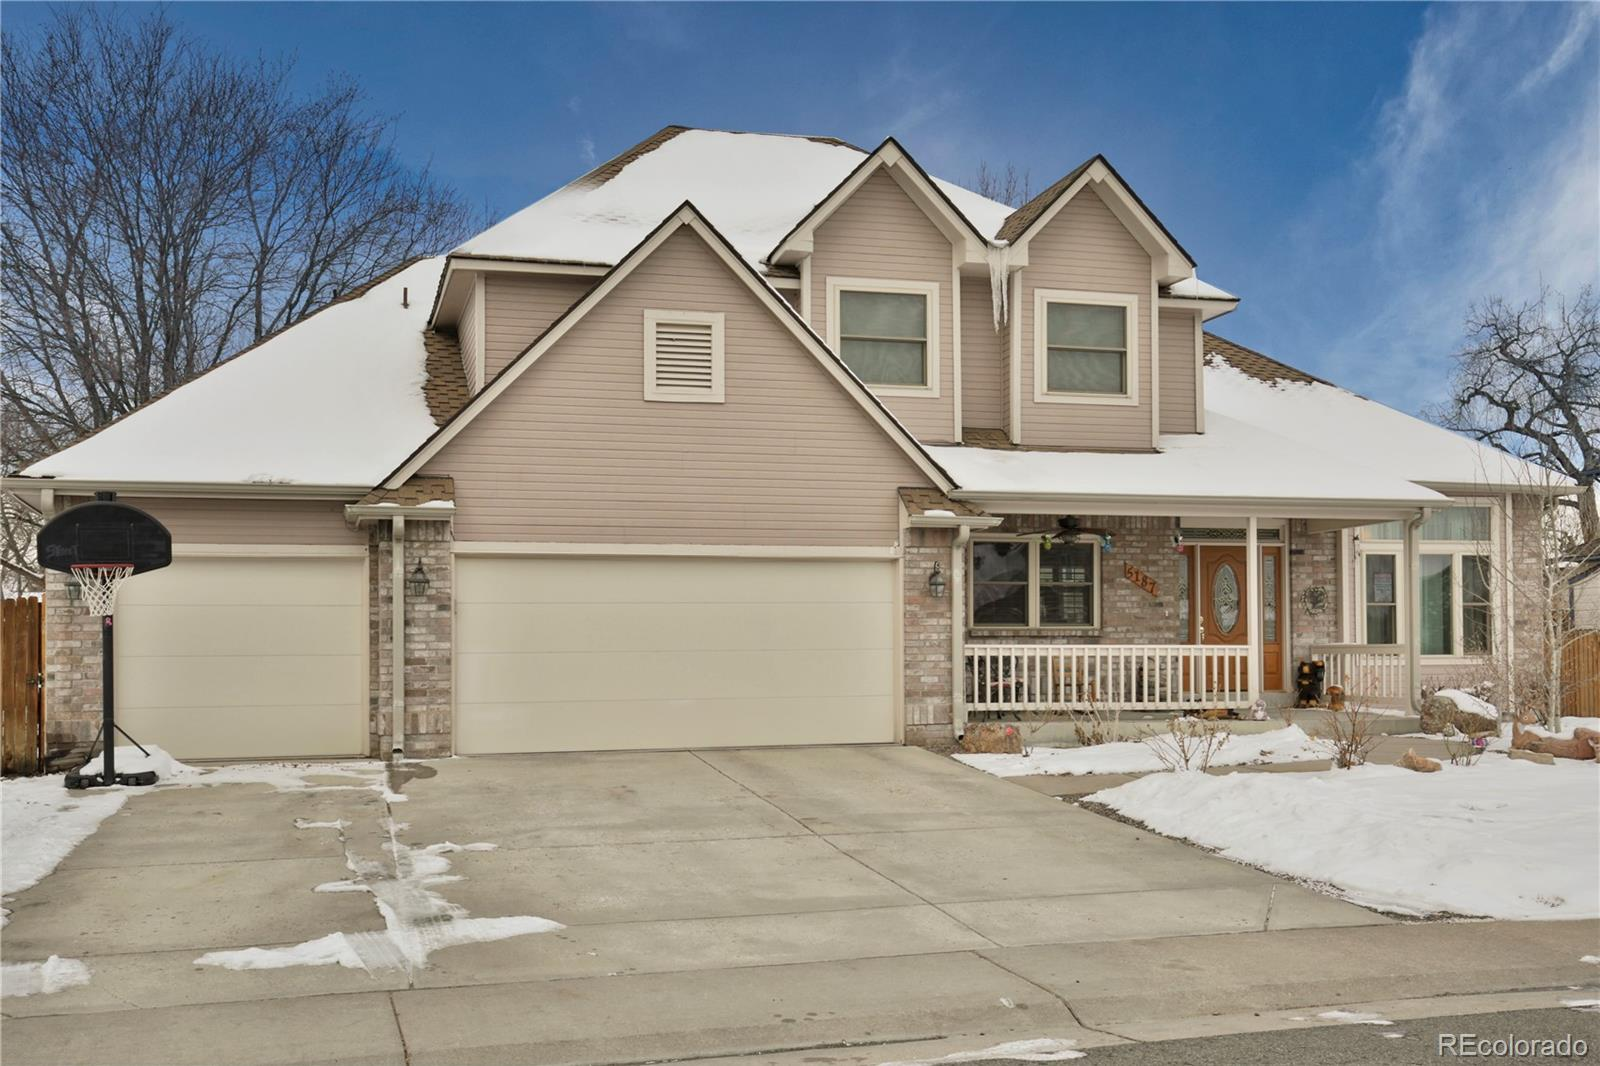 MLS# 5977333 - 2 - 5187 Youngfield Court, Arvada, CO 80002